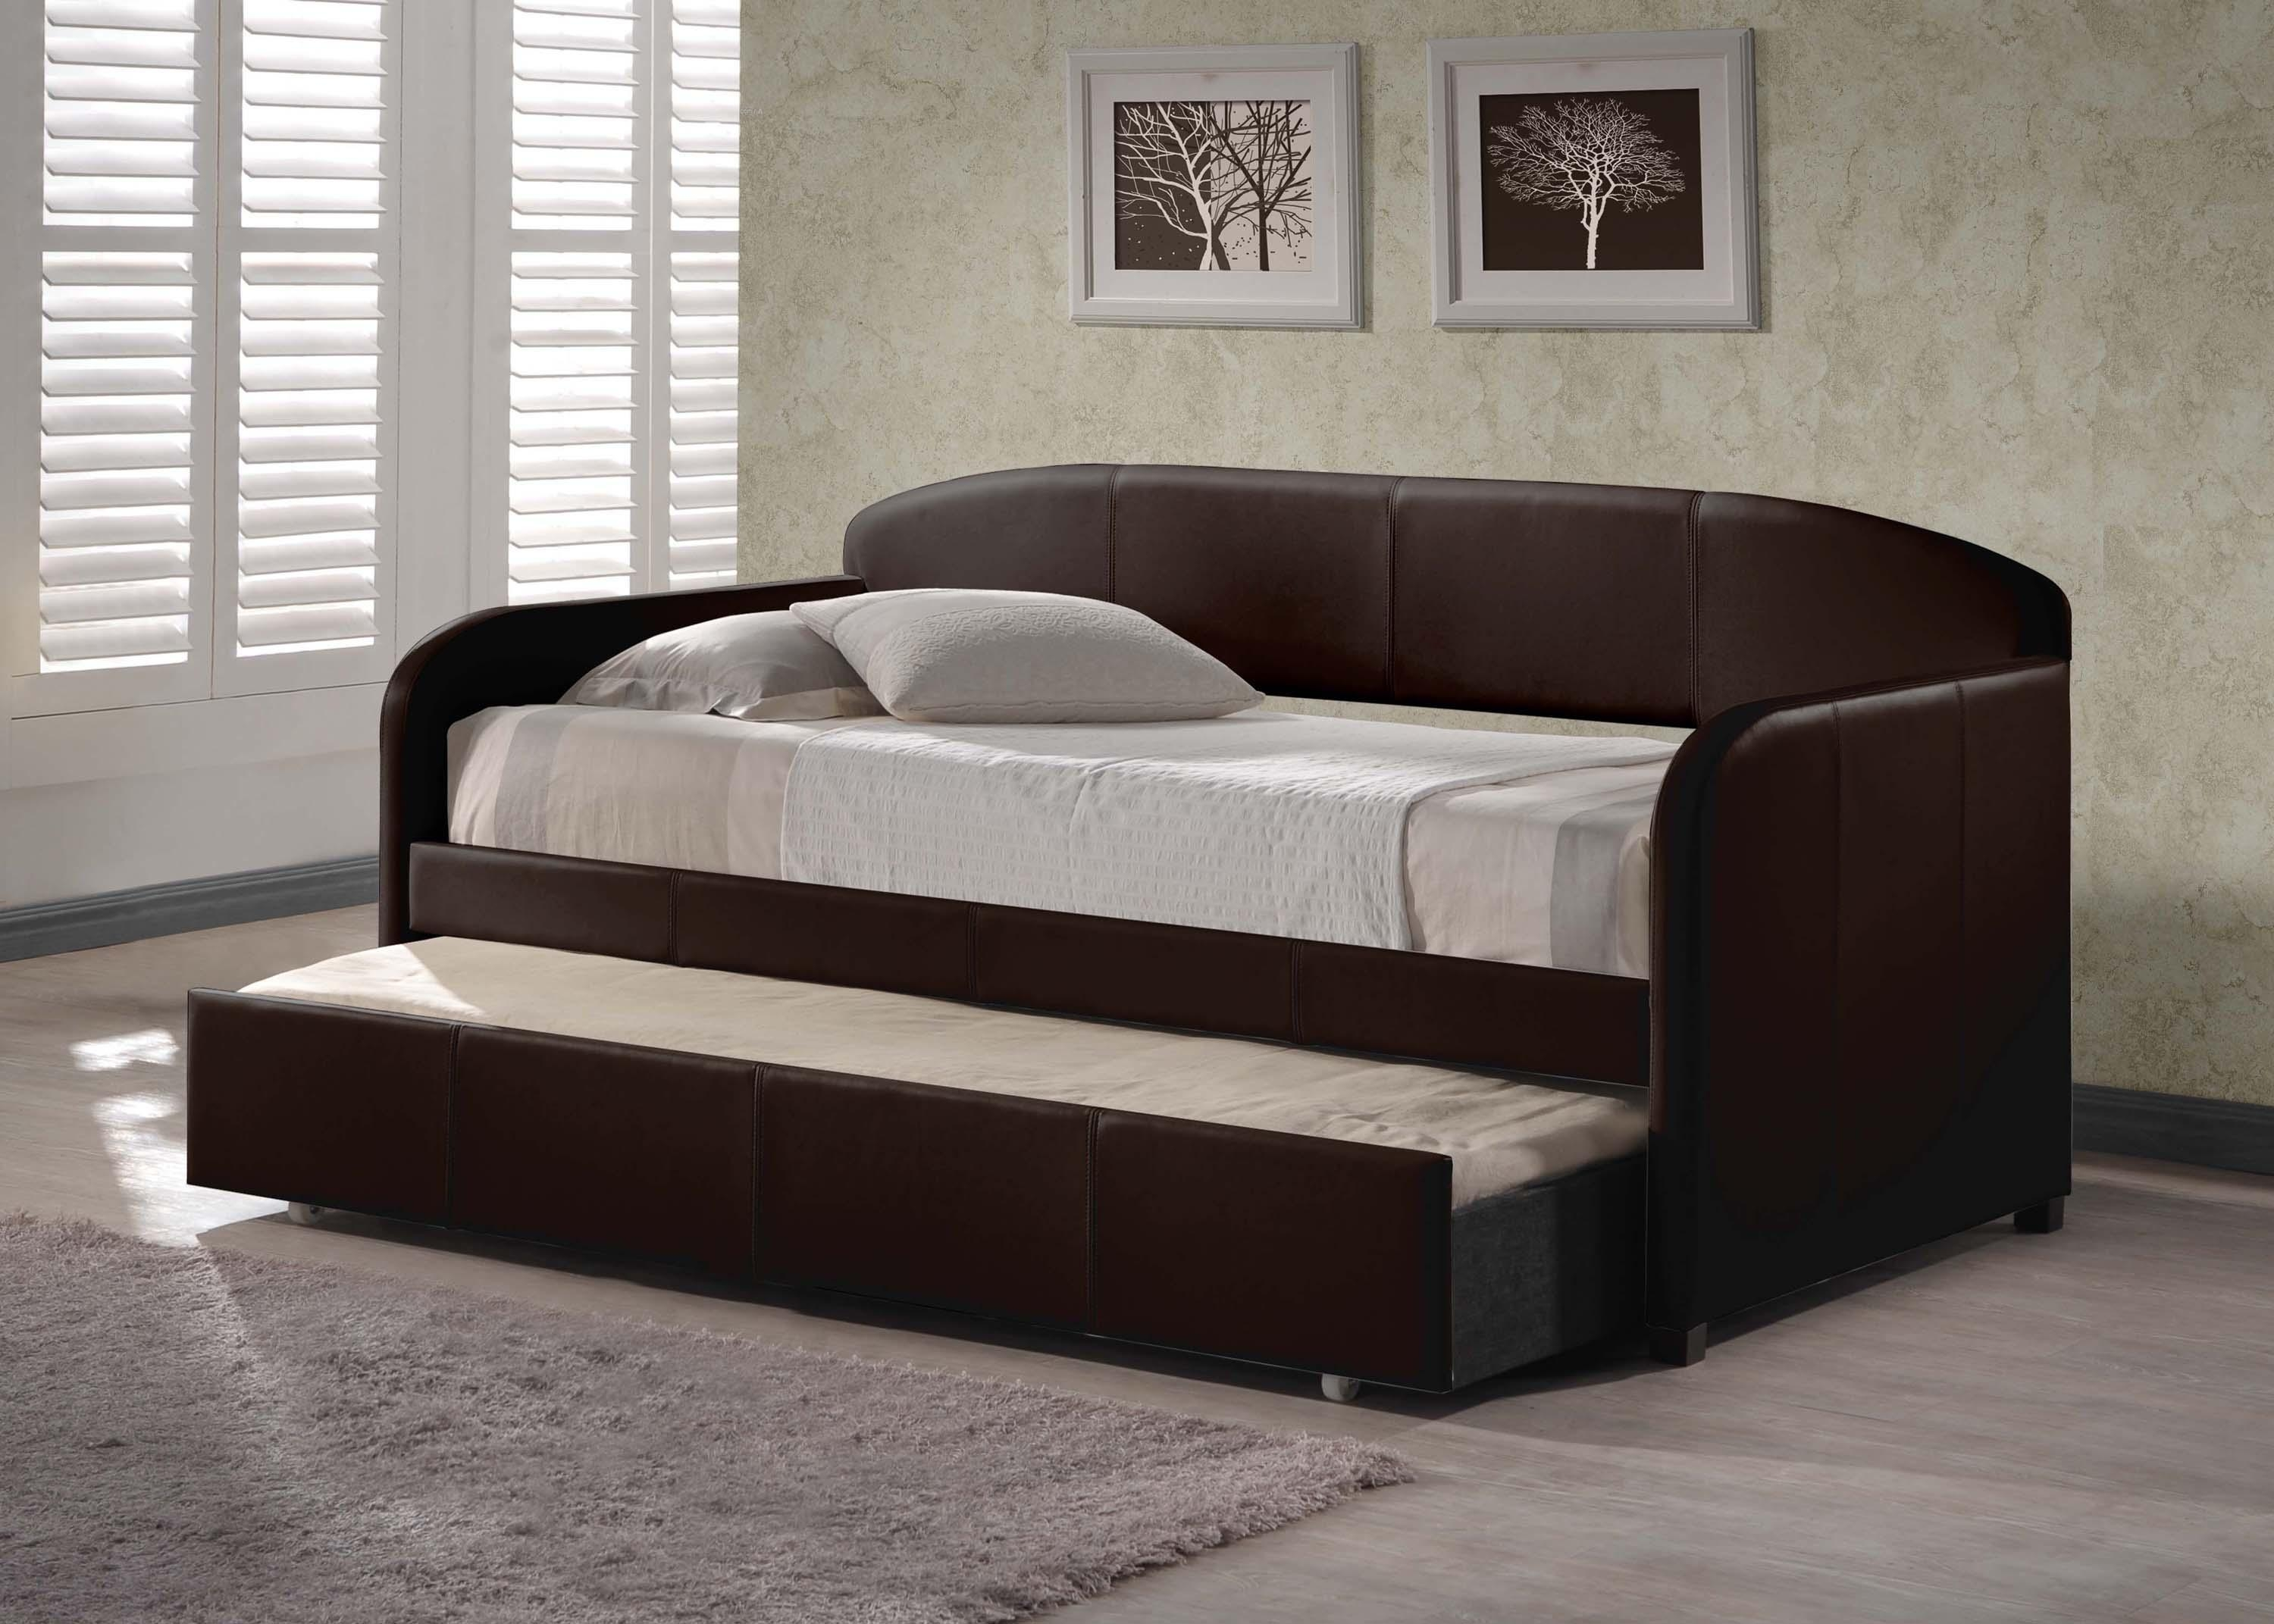 Sofa Daybed With Trundle | Best Sofas Ideas – Sofascouch With Sofas With Trundle (View 8 of 20)